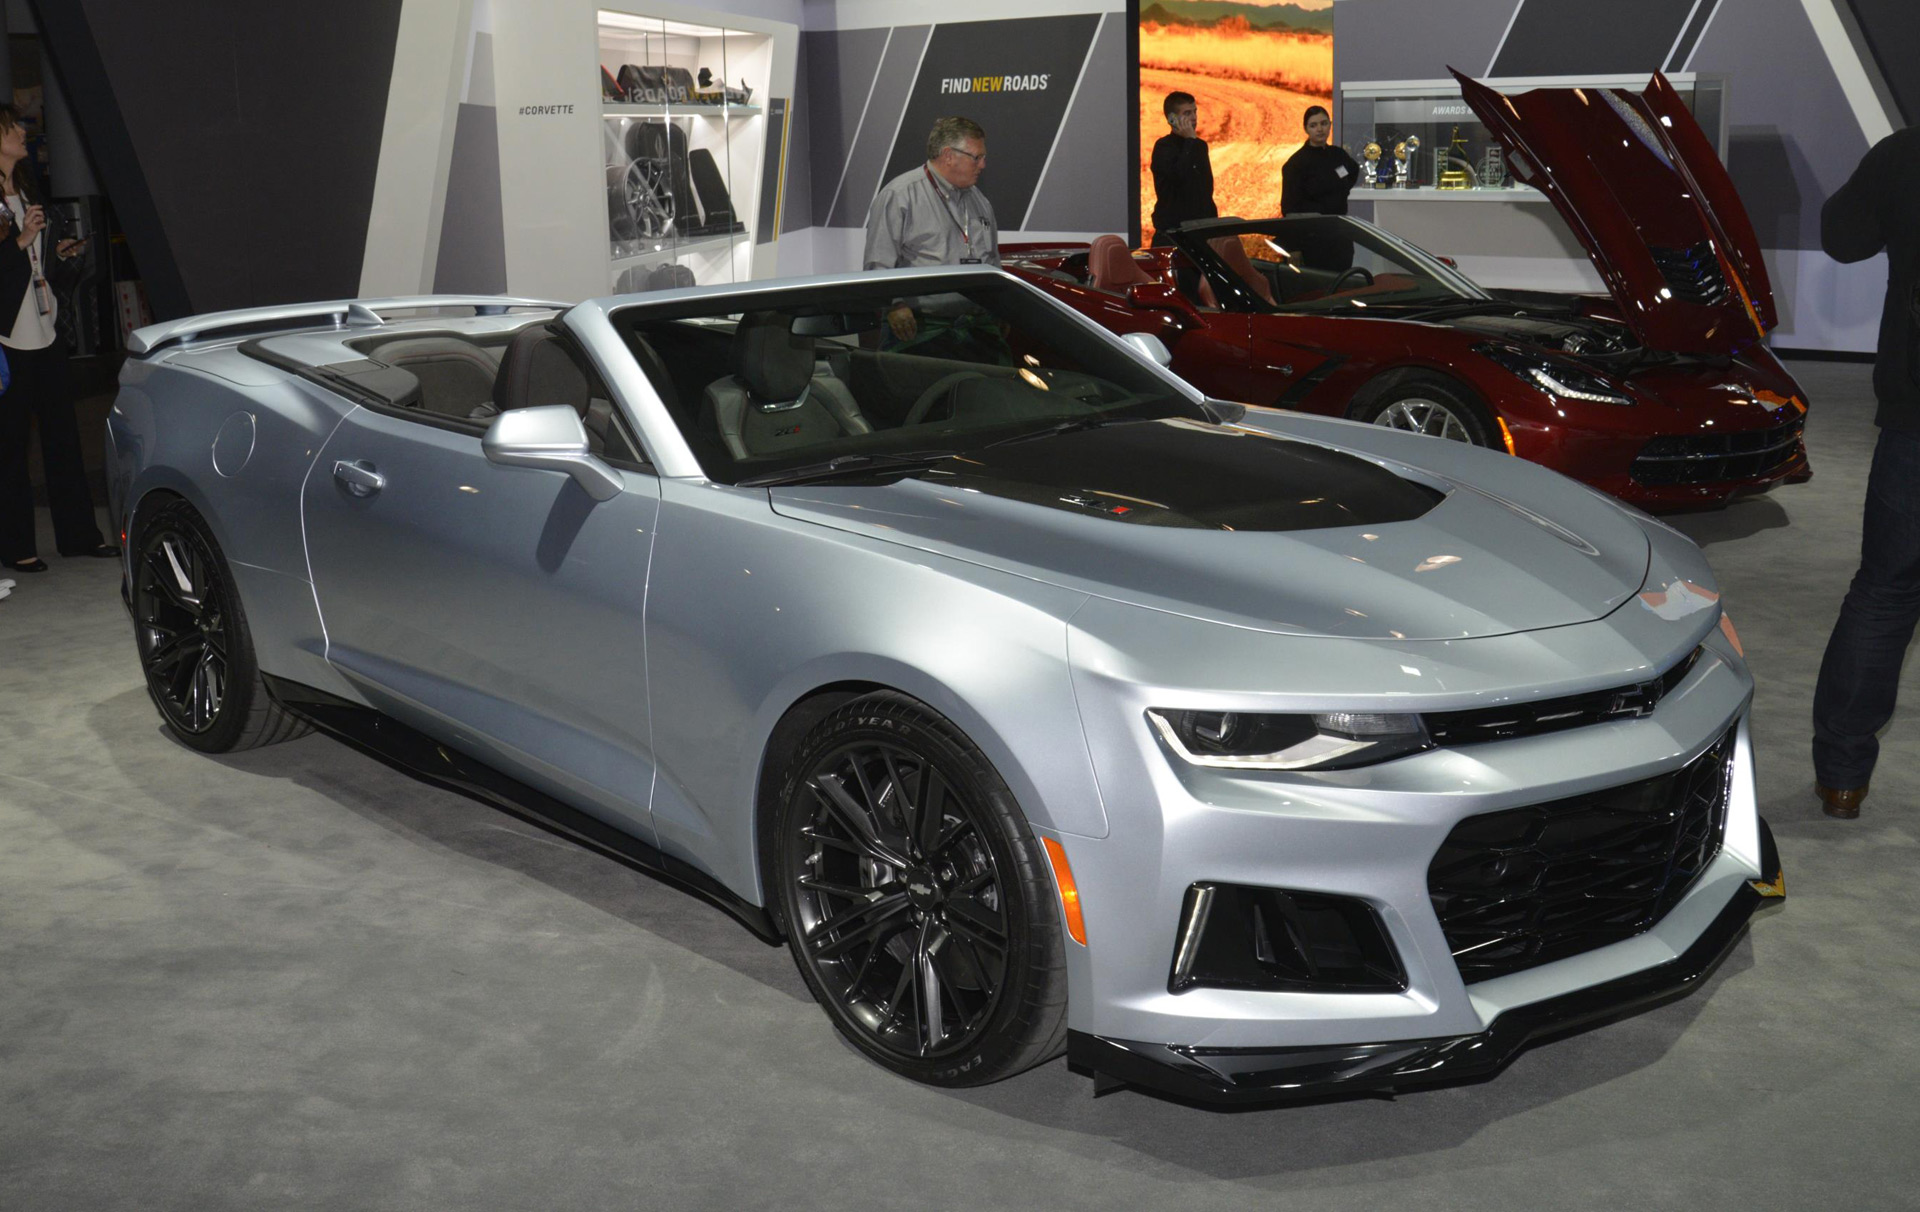 2017 chevrolet camaro zl1 convertible debuts in new york live photos and video. Black Bedroom Furniture Sets. Home Design Ideas